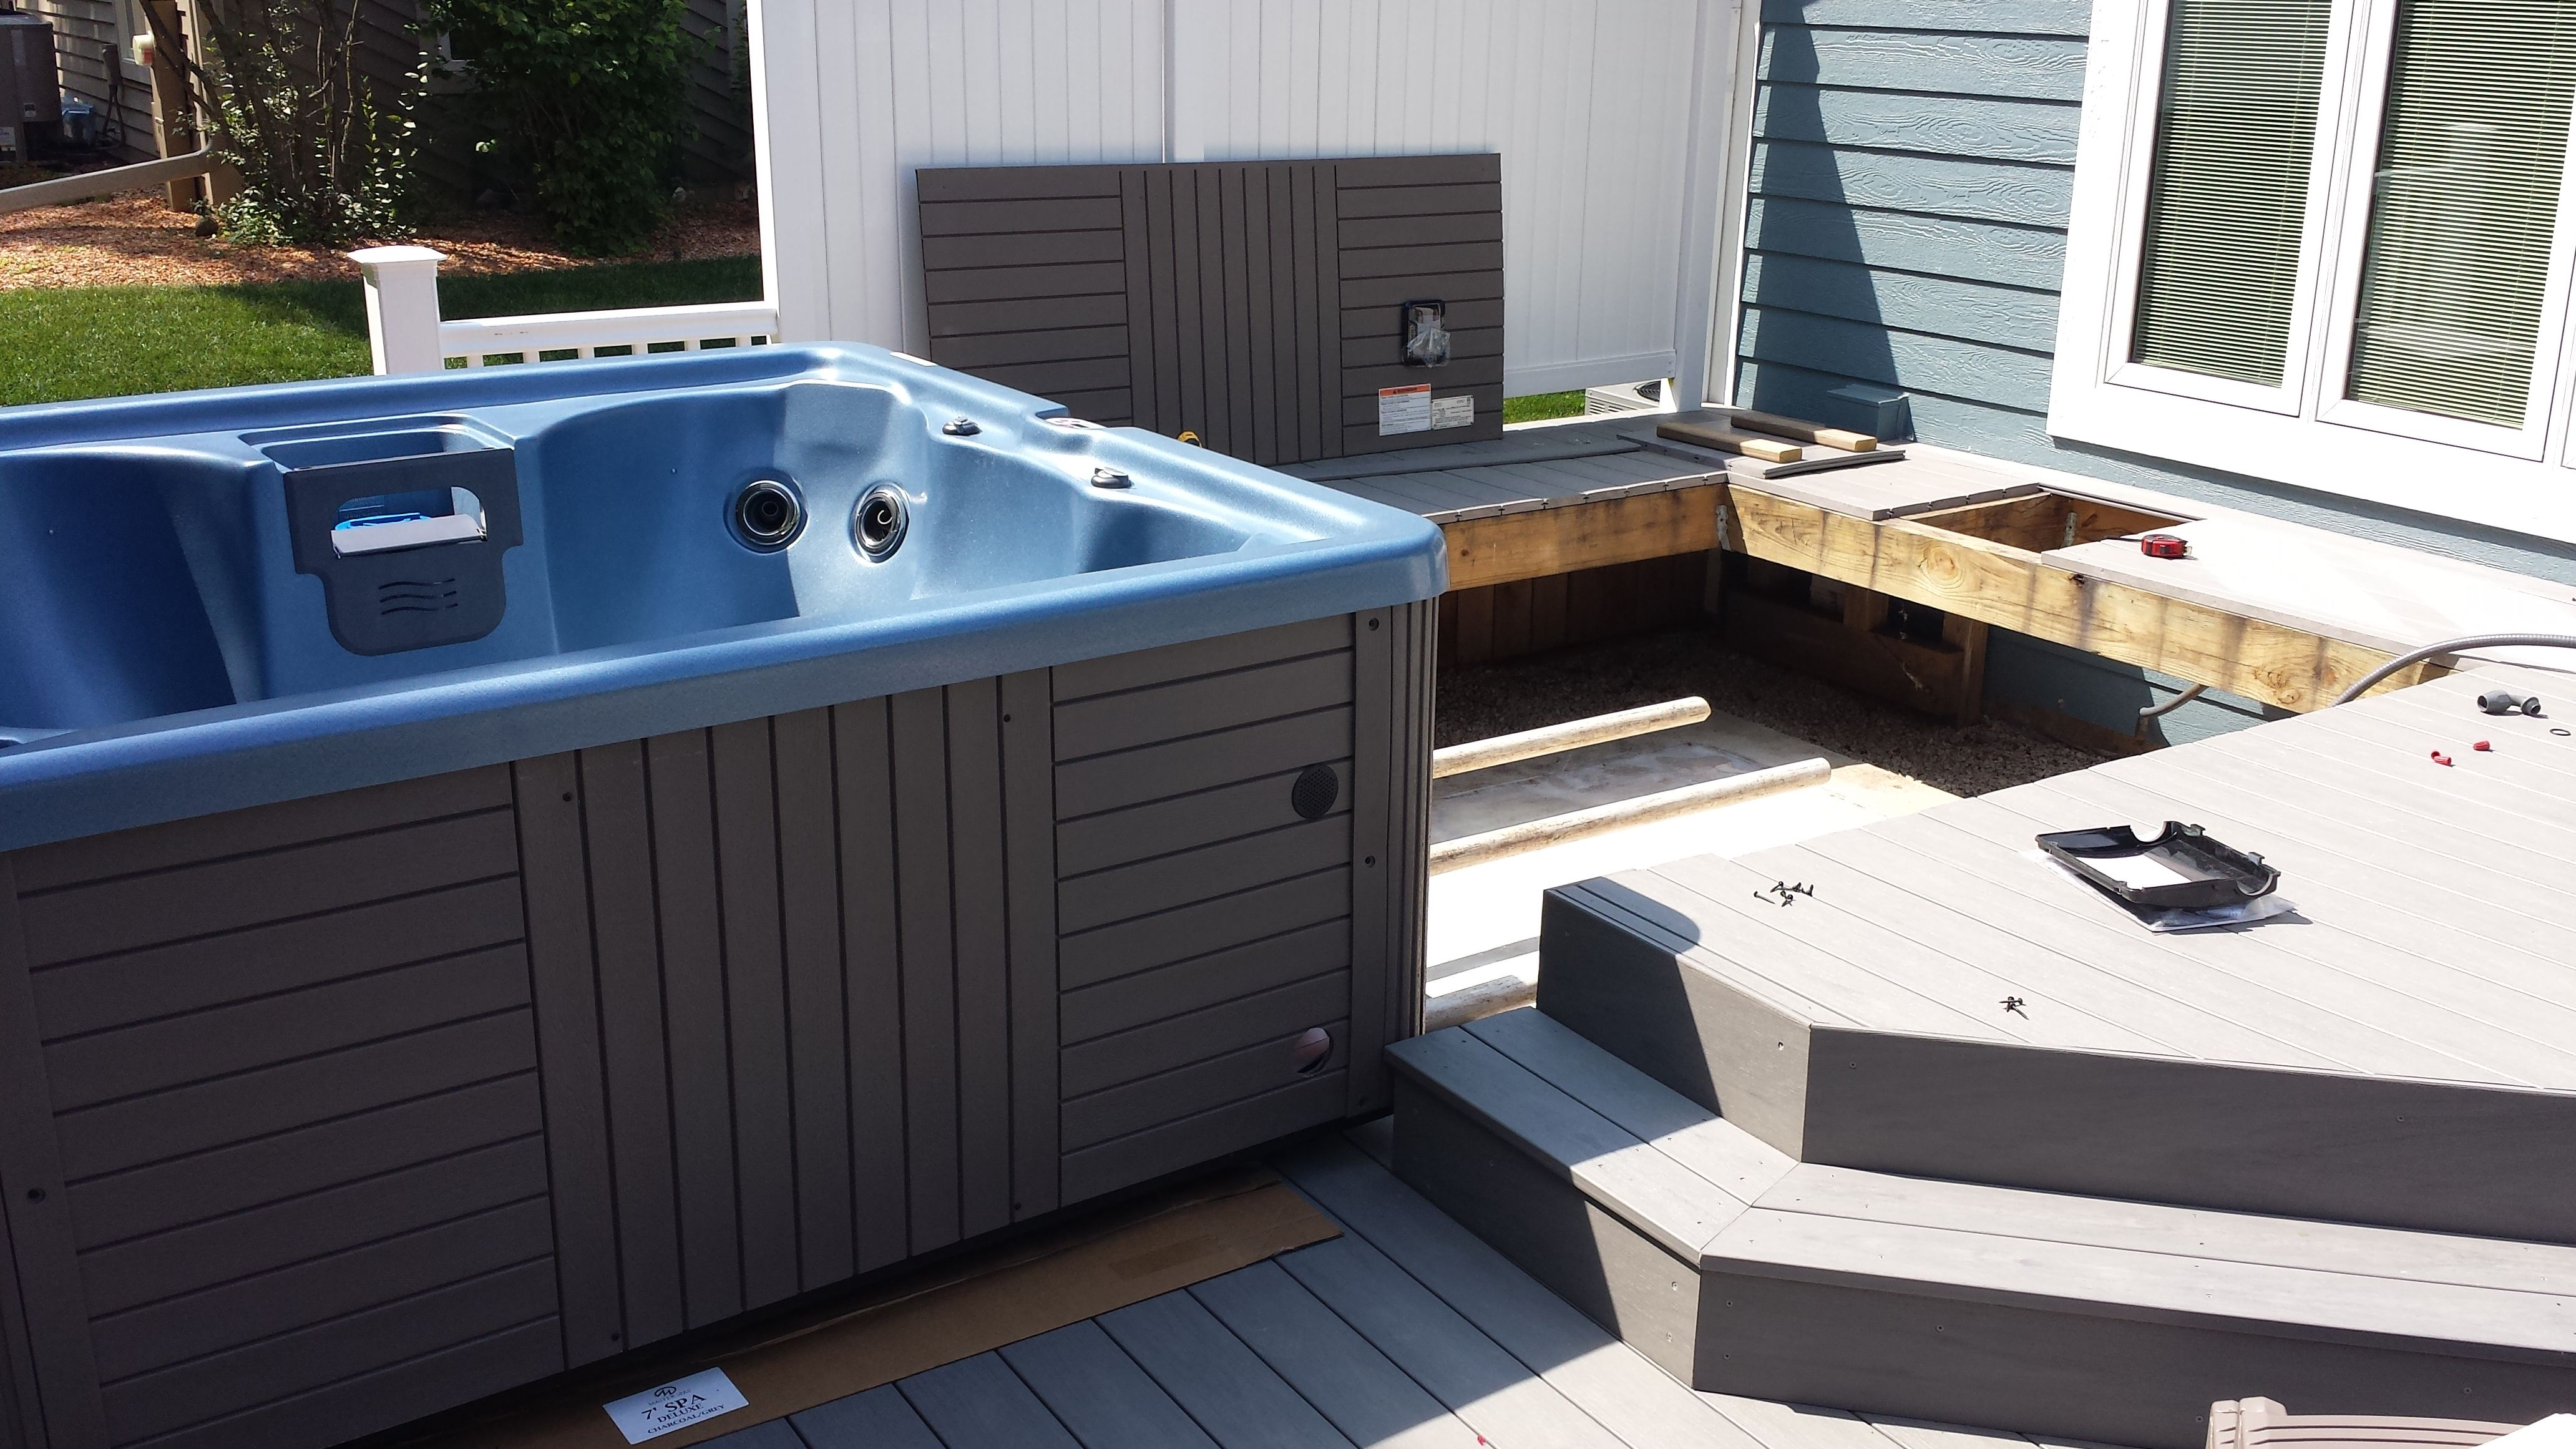 Here is a Master Spas Clarity Series being installed into a deck.